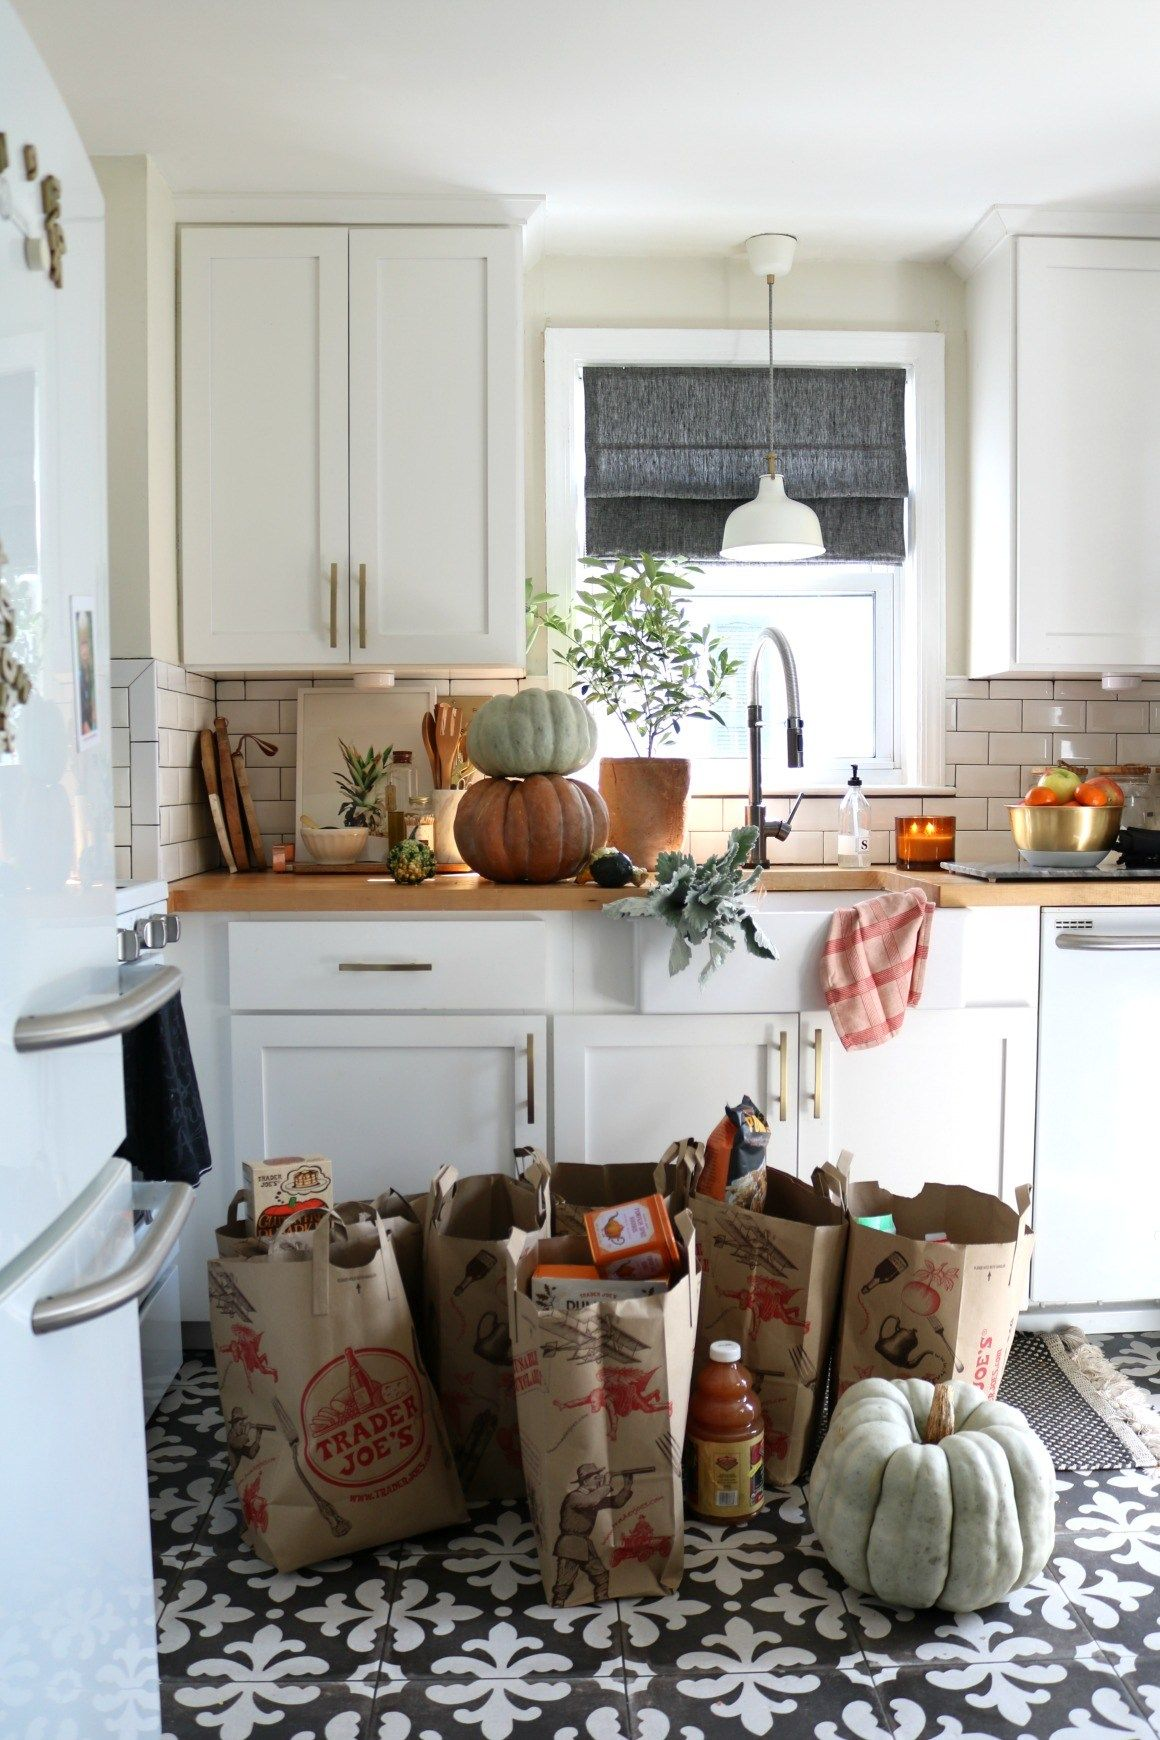 Trader Joe's Fall Favorites Shopping List: This is a list of over 500 people surveyed featuring their favorite fall treats from Trader Joe's. Check out the free printable featuring the Trader Joe's fall bucket list of grocery items with pumpkin, harvest vegetables, and family friendly dinners to try this fall.  #falldining #traderjoes #mealplanning #fallmealplanning #pumpkinrecipes #pumpkindinnerideas #nestingwithgrace #grocerylist